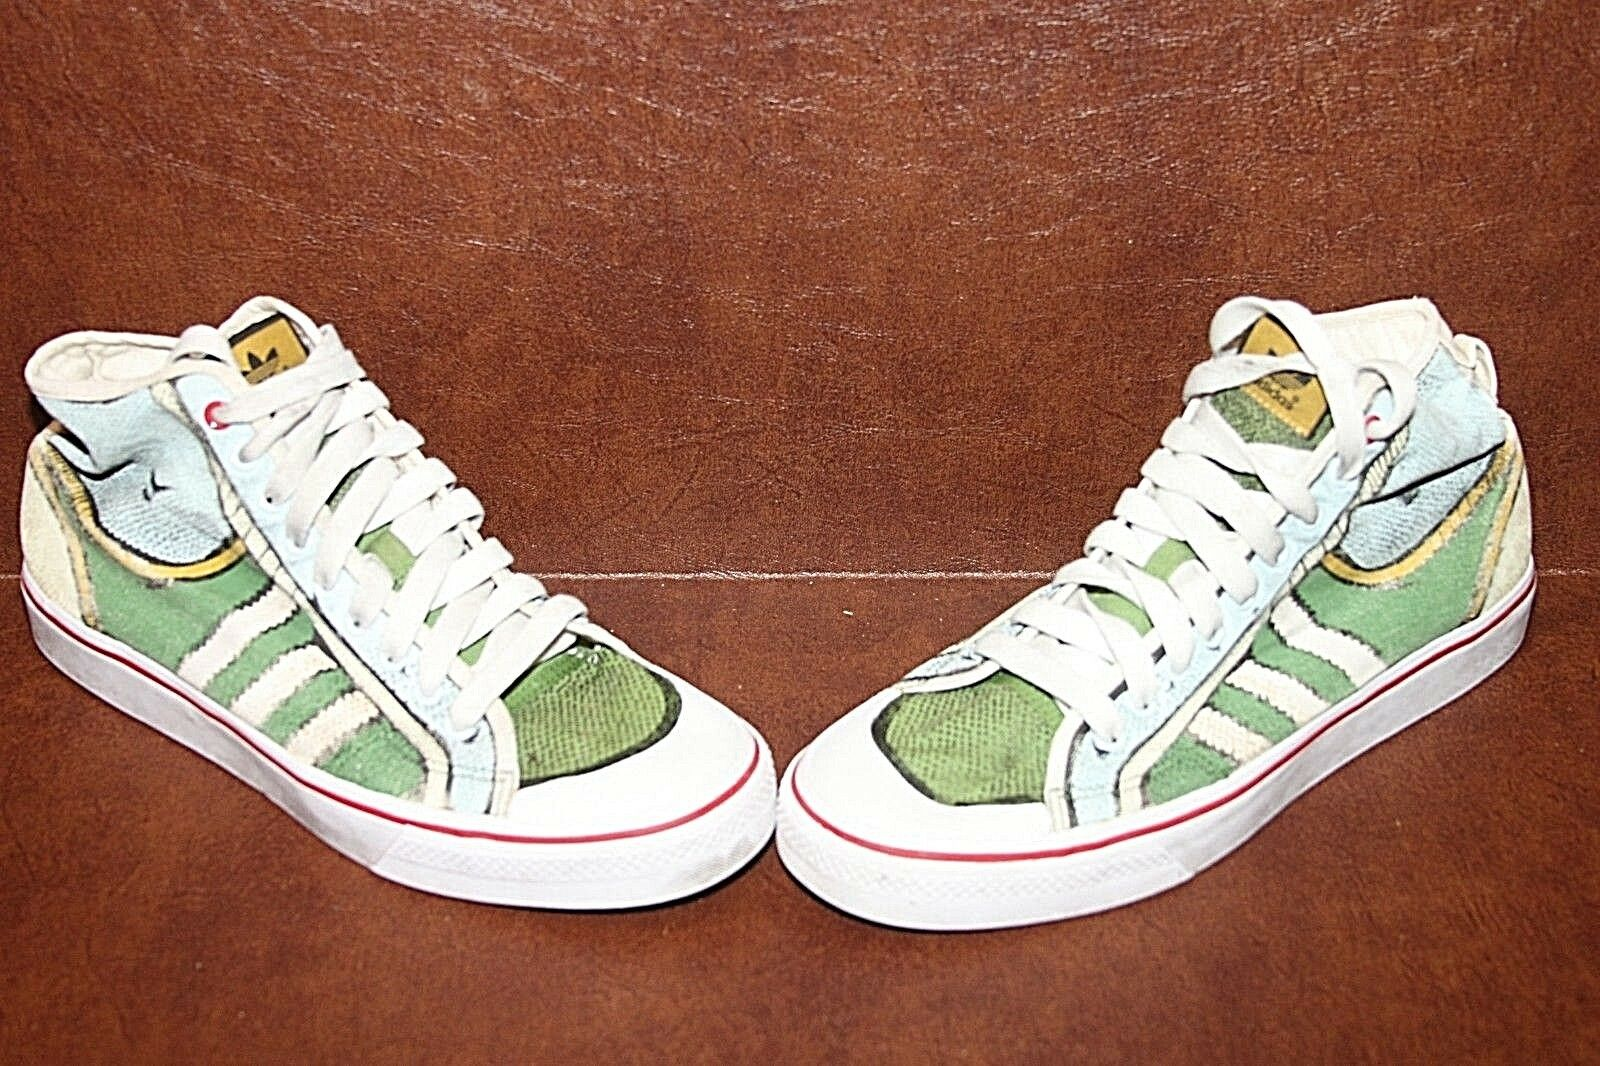 Adidas RARE 2009 Nizza Hi Tops G02125 Cartoon Comicbook Sz 12